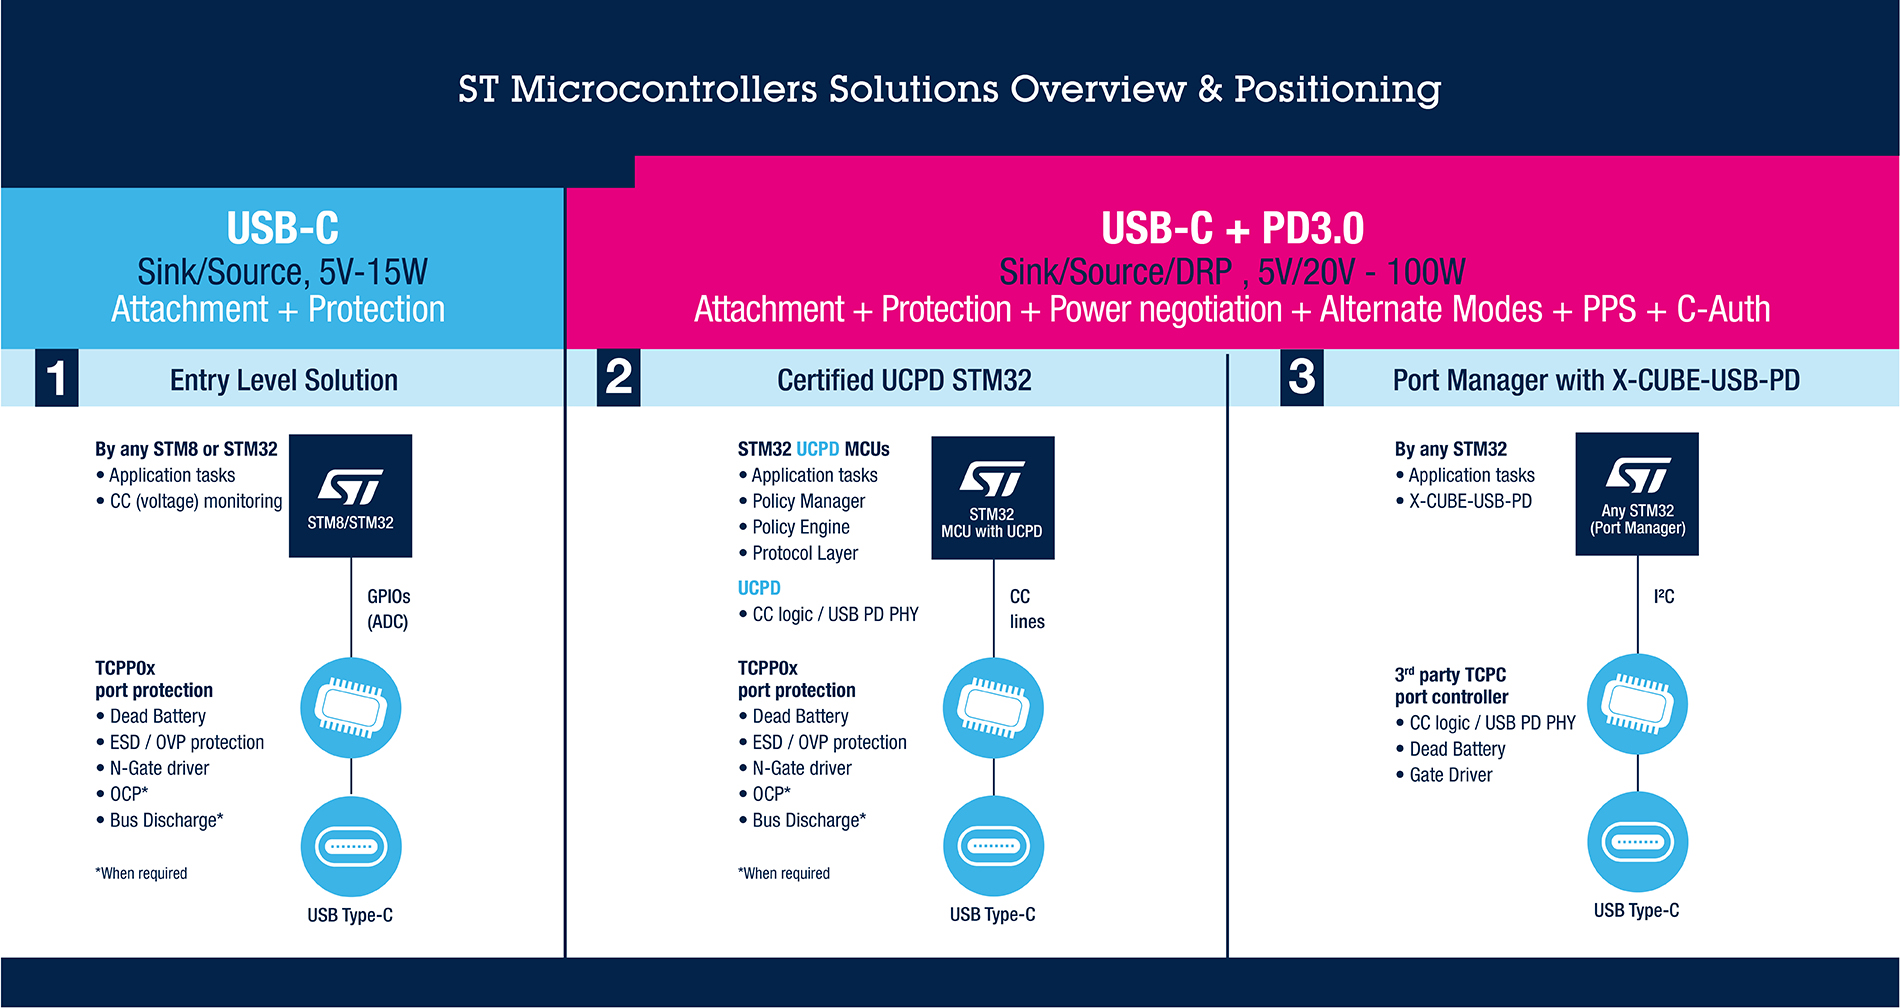 Usb C Stm32 Solutions For Usb Type-c™ And Power Delivery - Stmicroelectronics